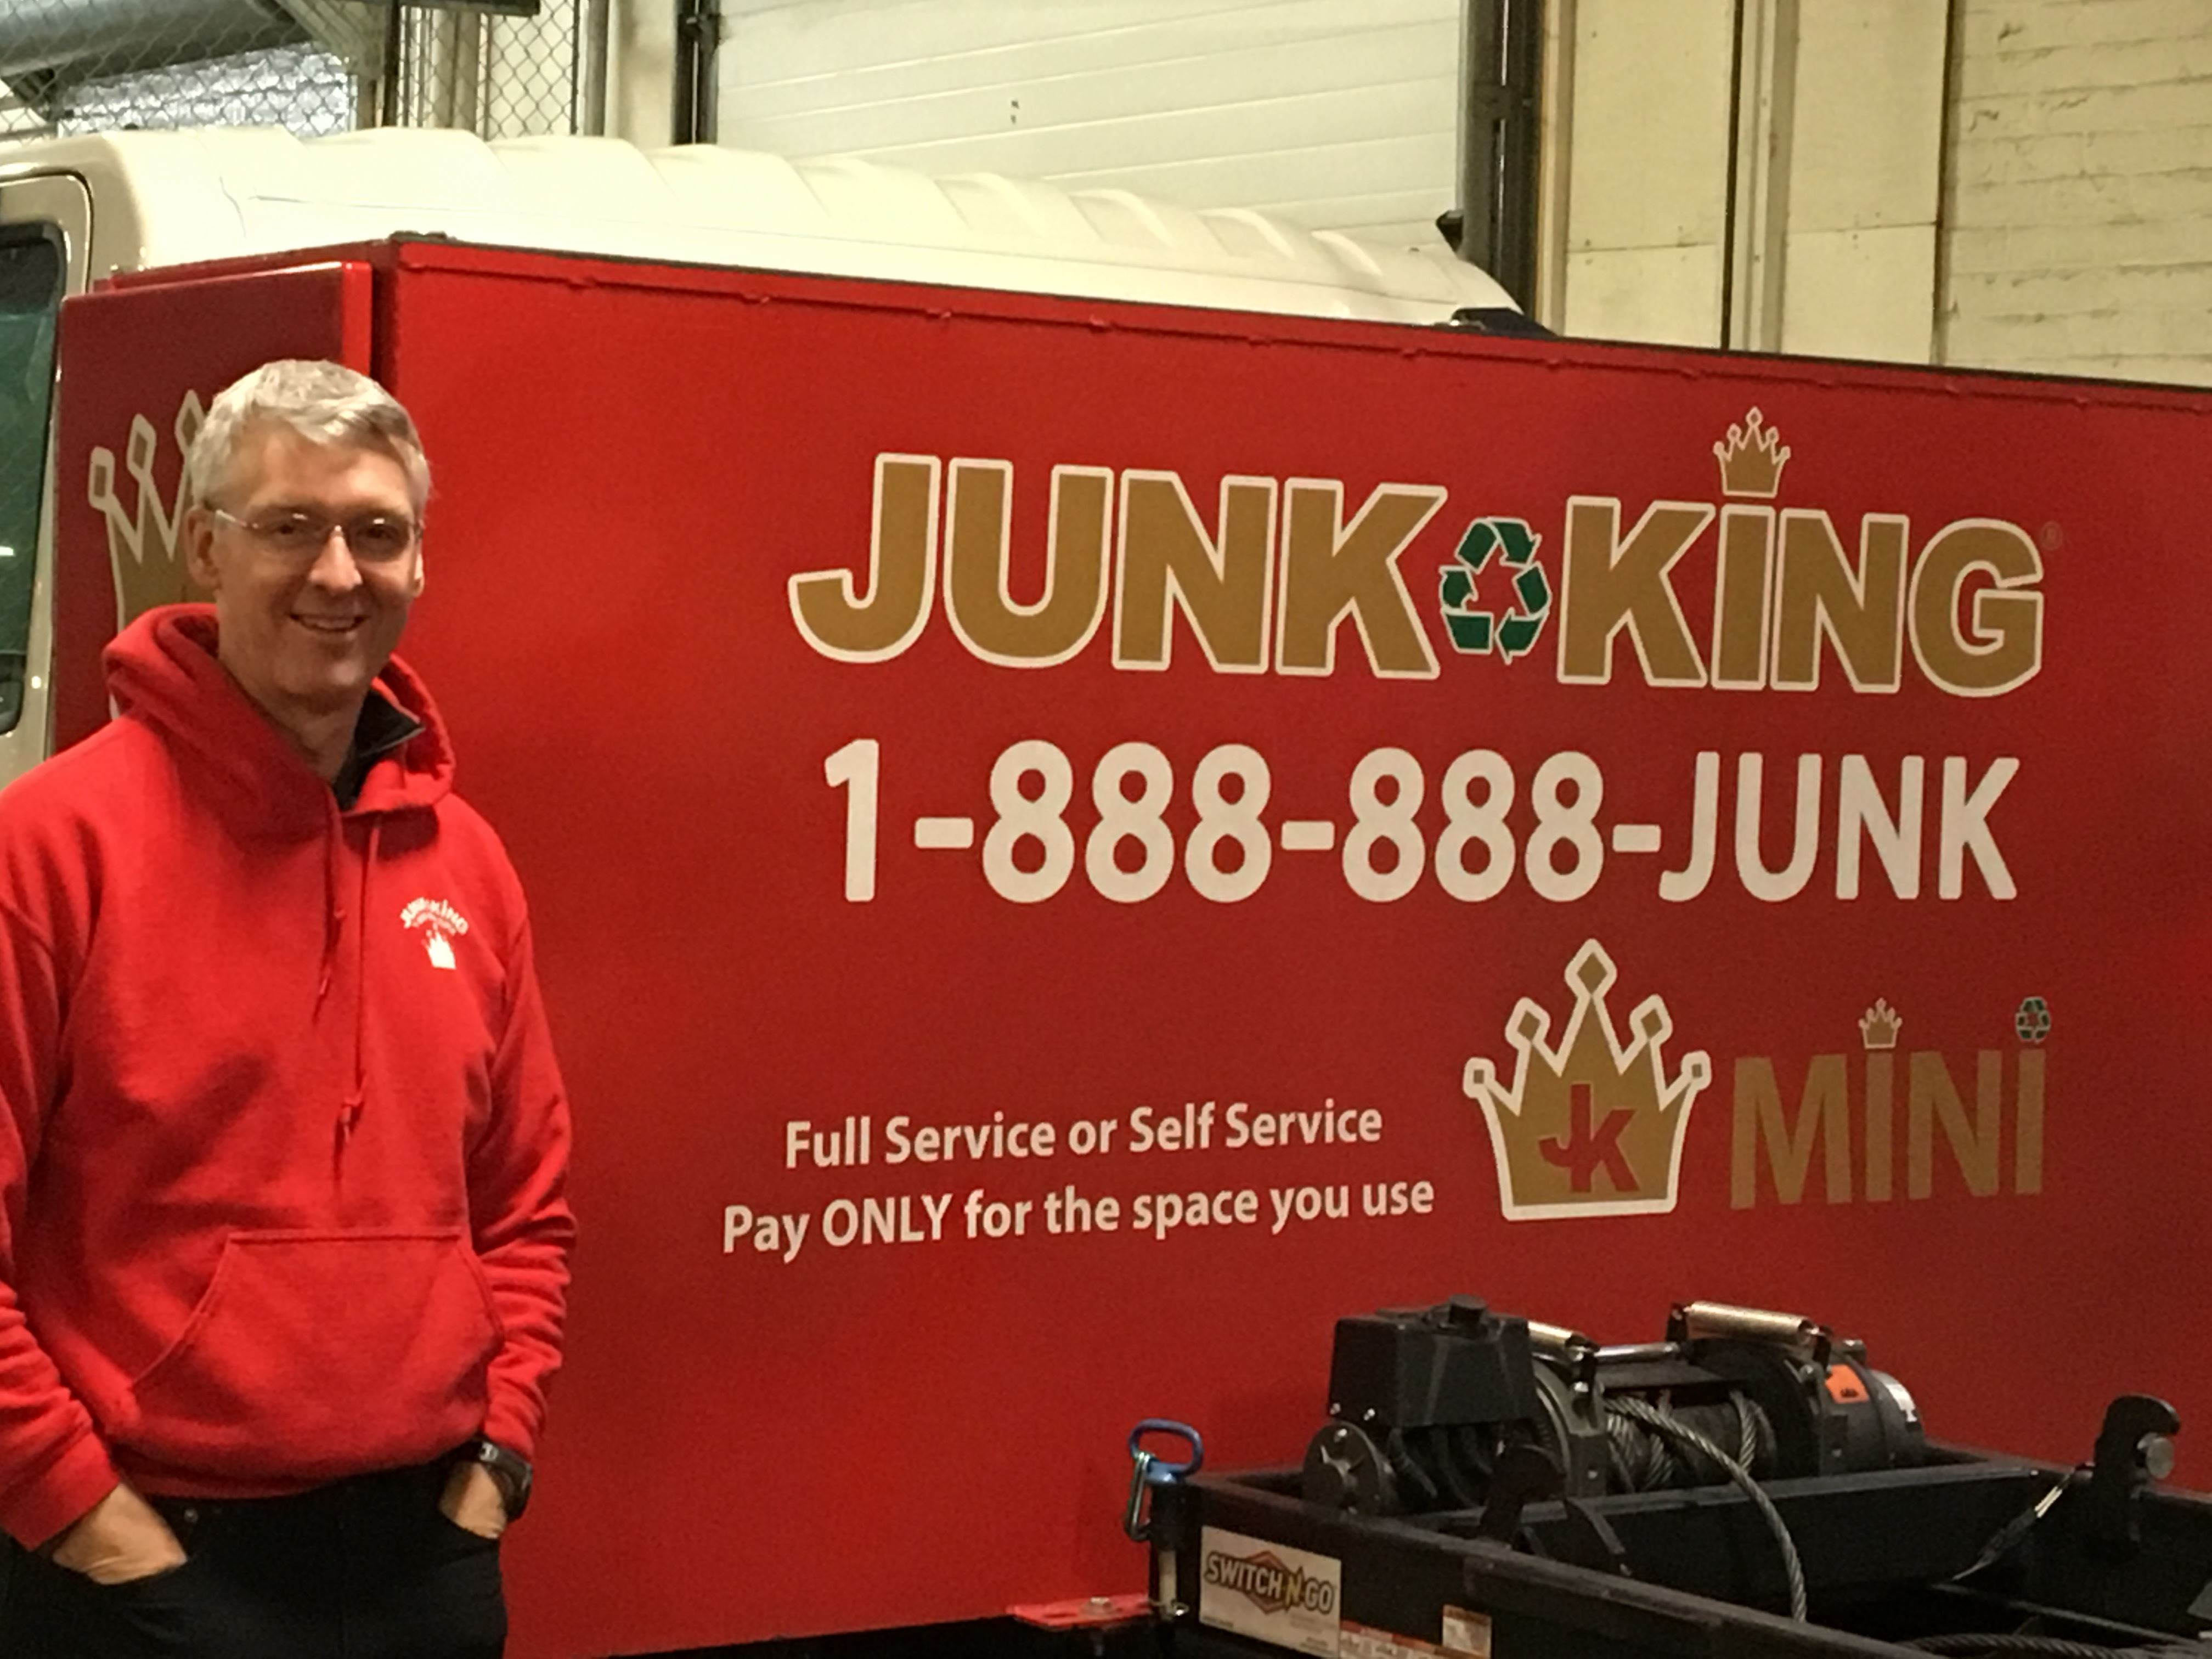 Junk King Franchise Owner,  Charles Hagedorn.